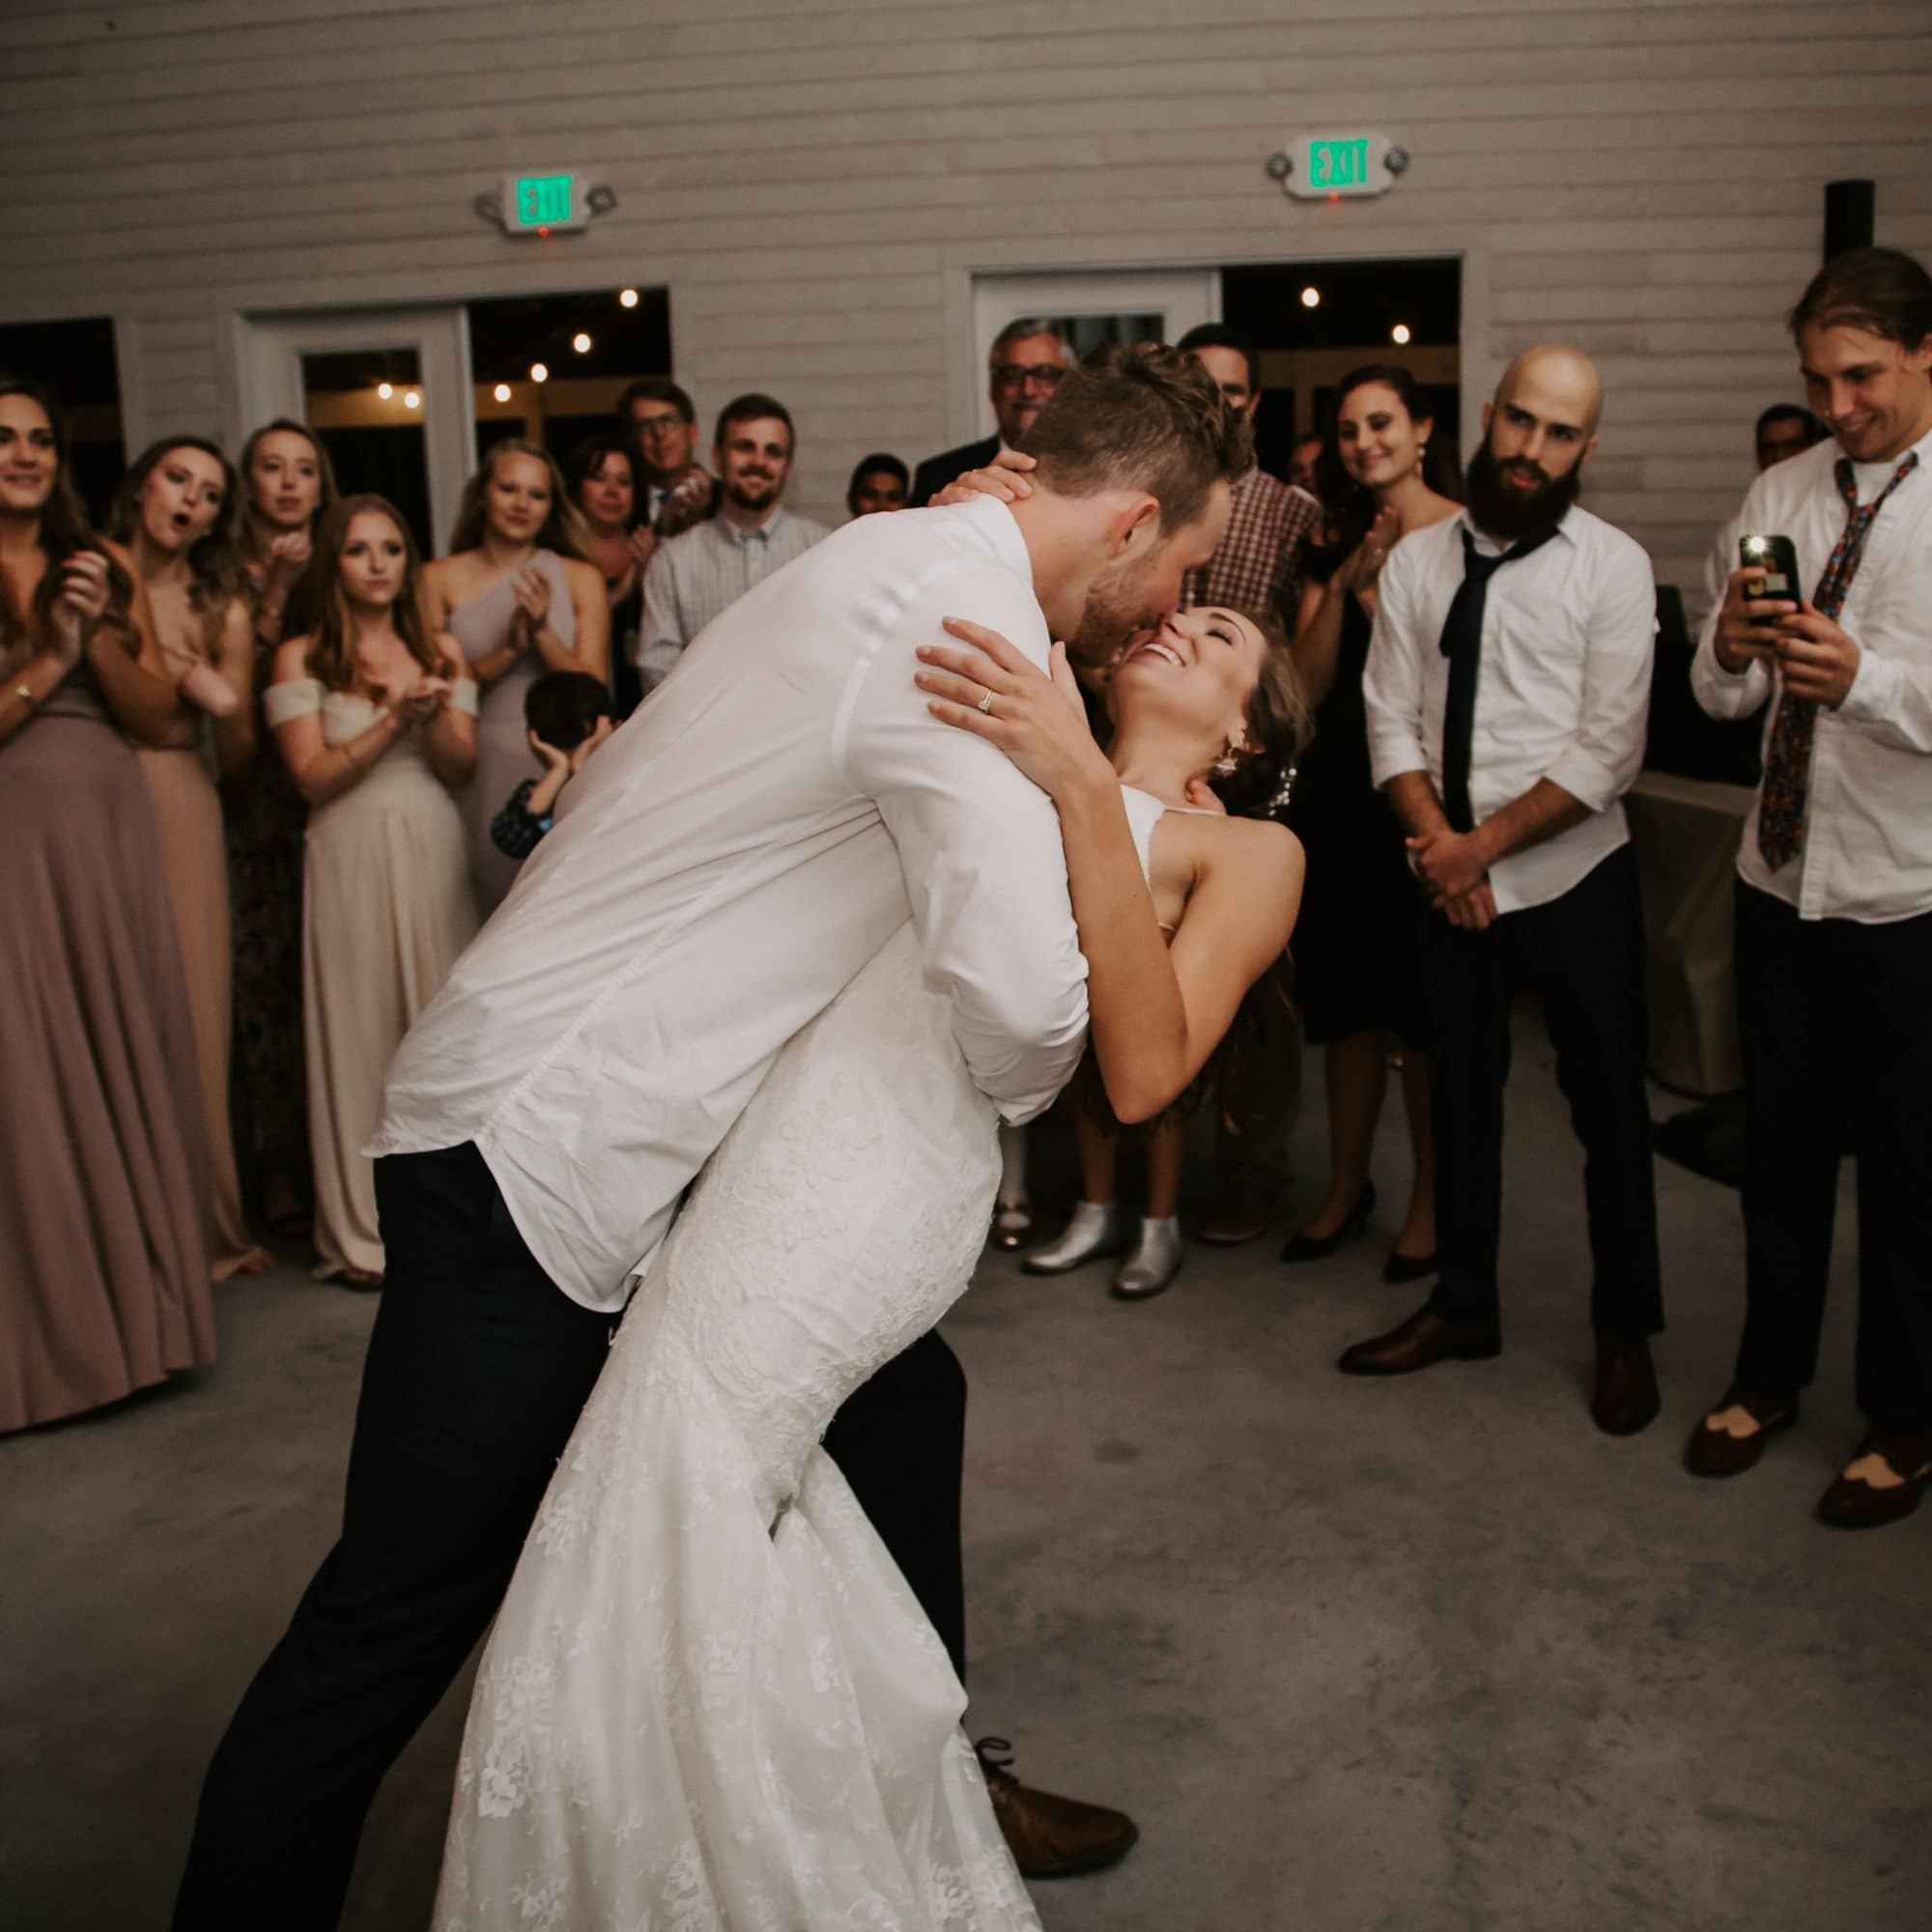 Groom dipping bride on the dance floor at wedding reception